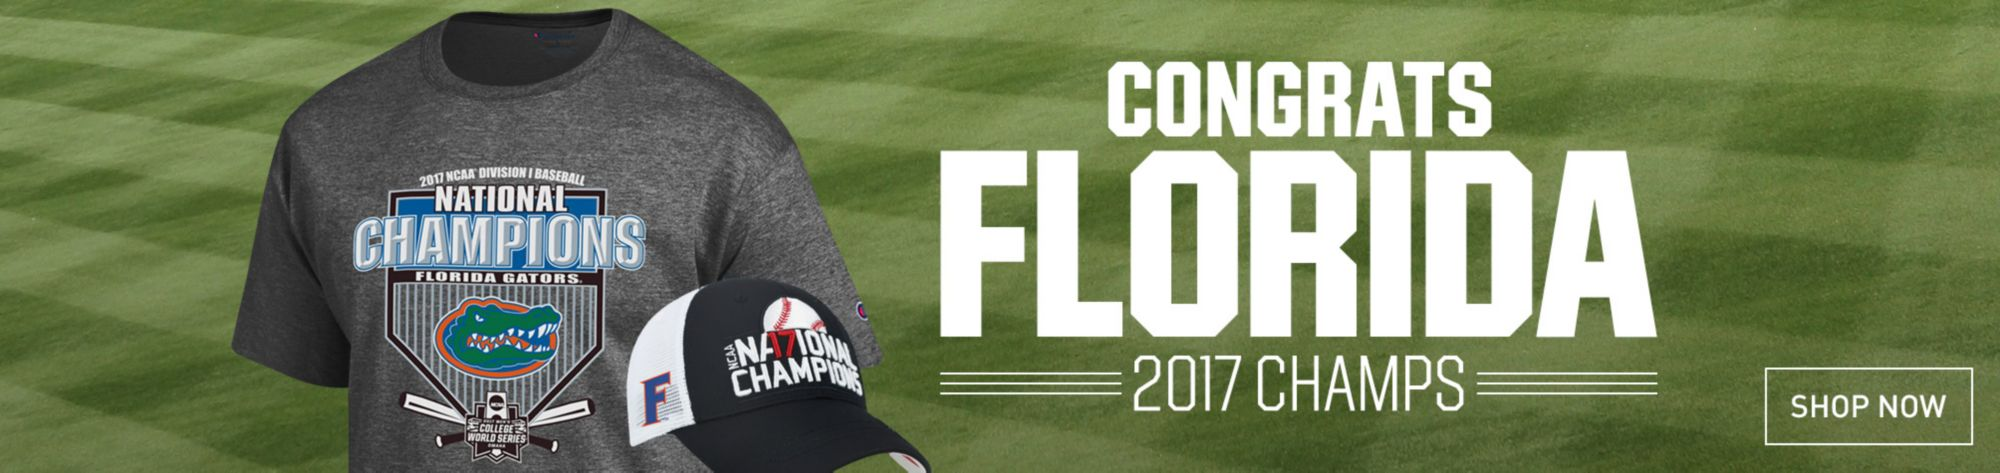 Florida 2017 Champs Gear